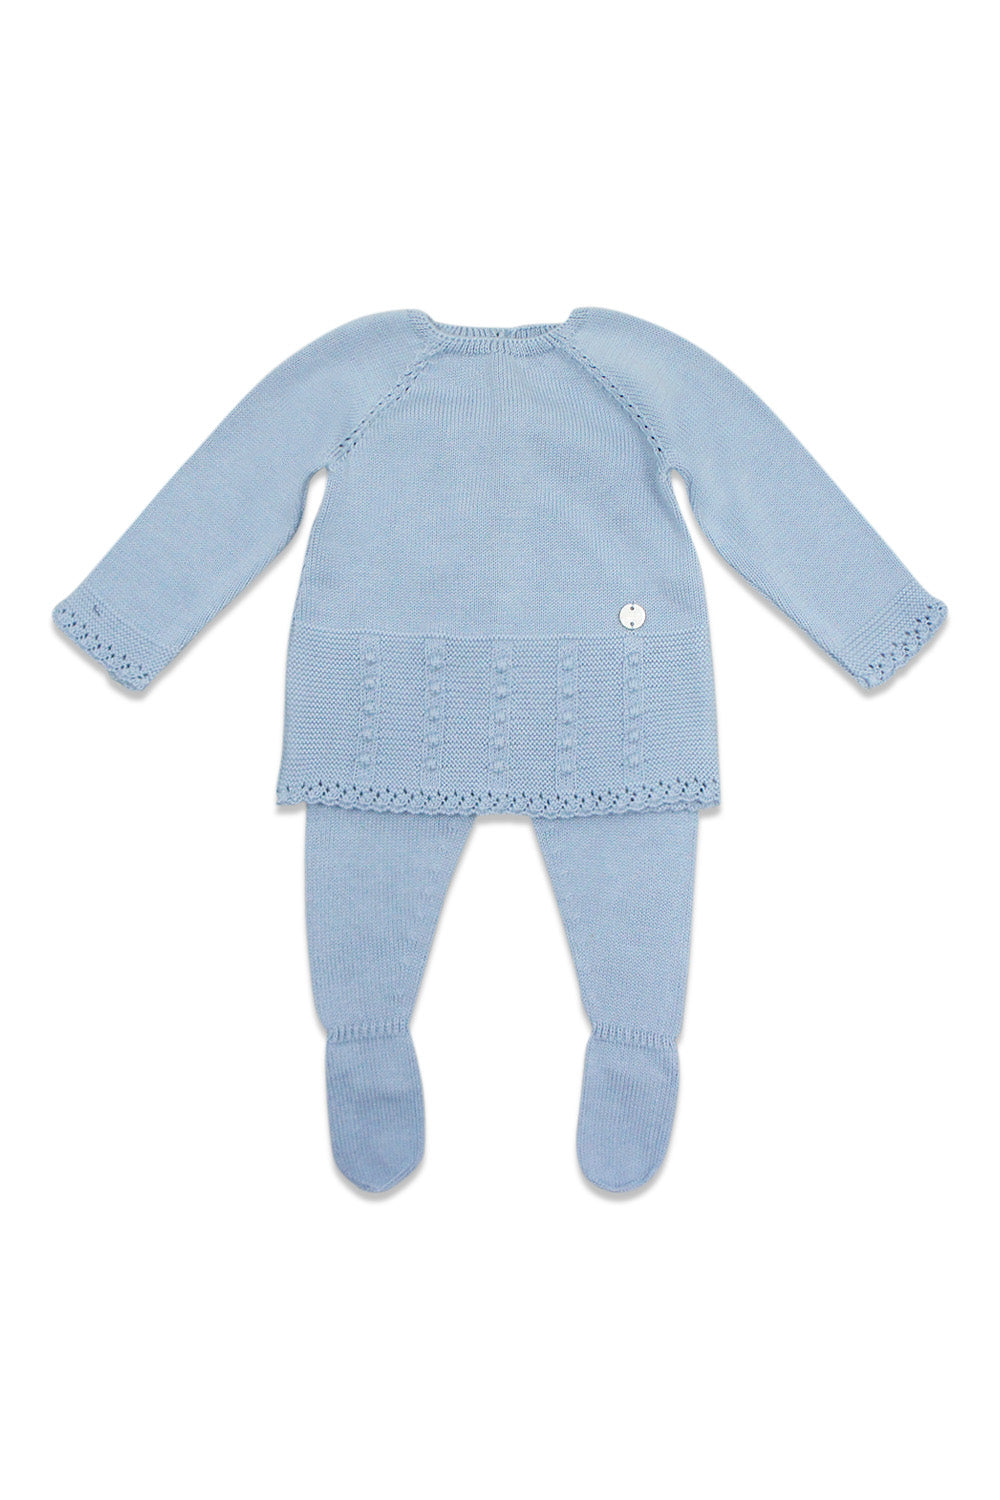 Paz Powder Blue Knit Set